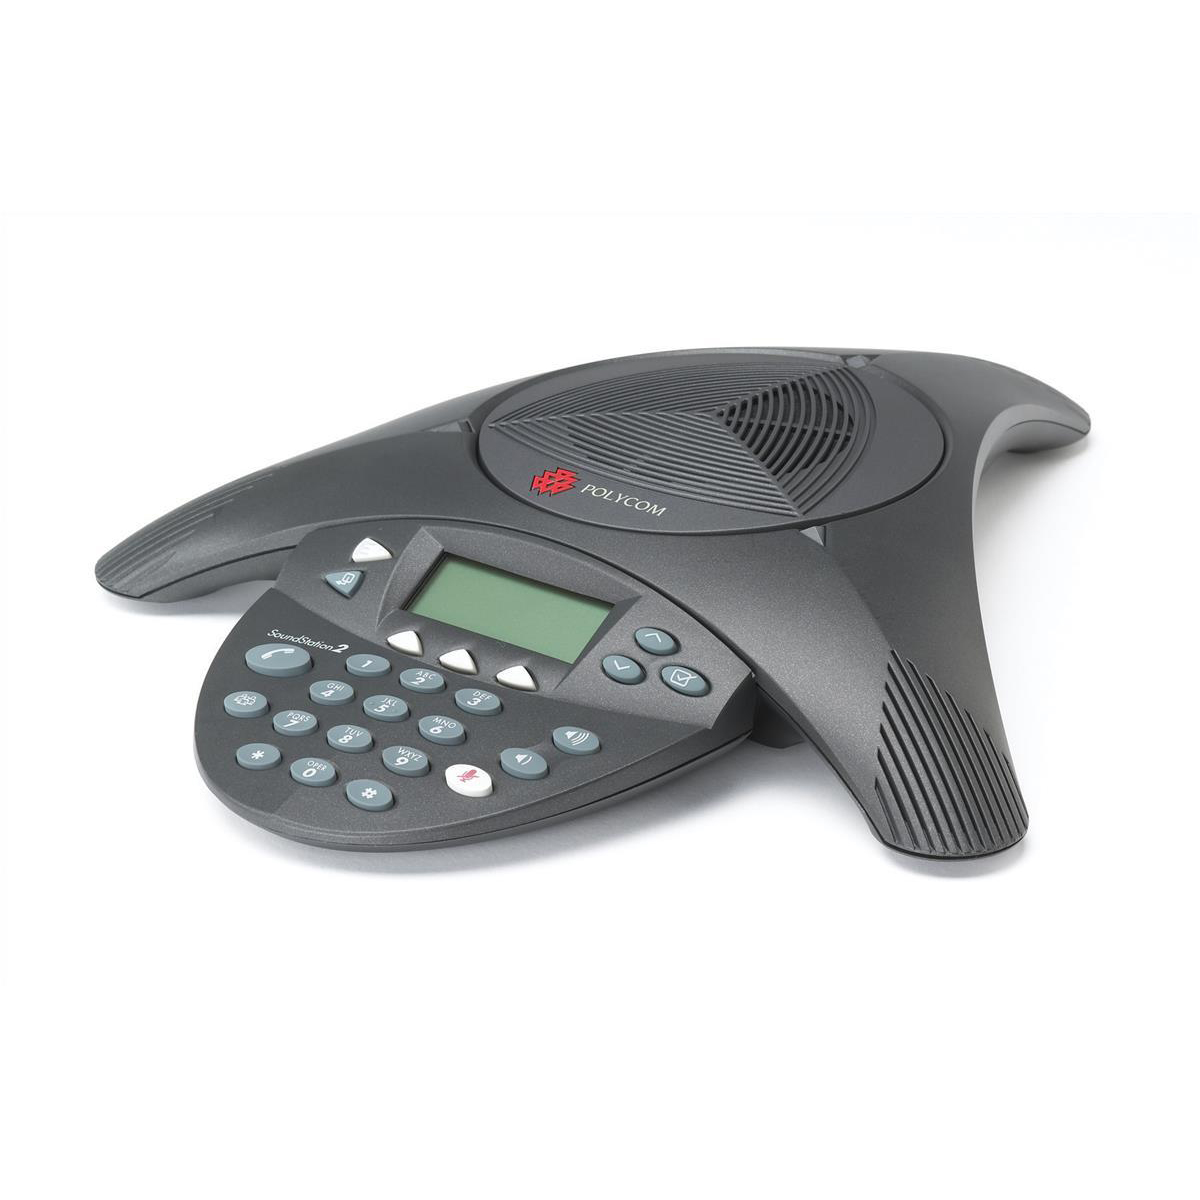 Telephones Polycom SoundStation2 Conference Phone Anti-Echo Full Duplex 8-10 Users 360 Deg Pickup Ref PB-PO2